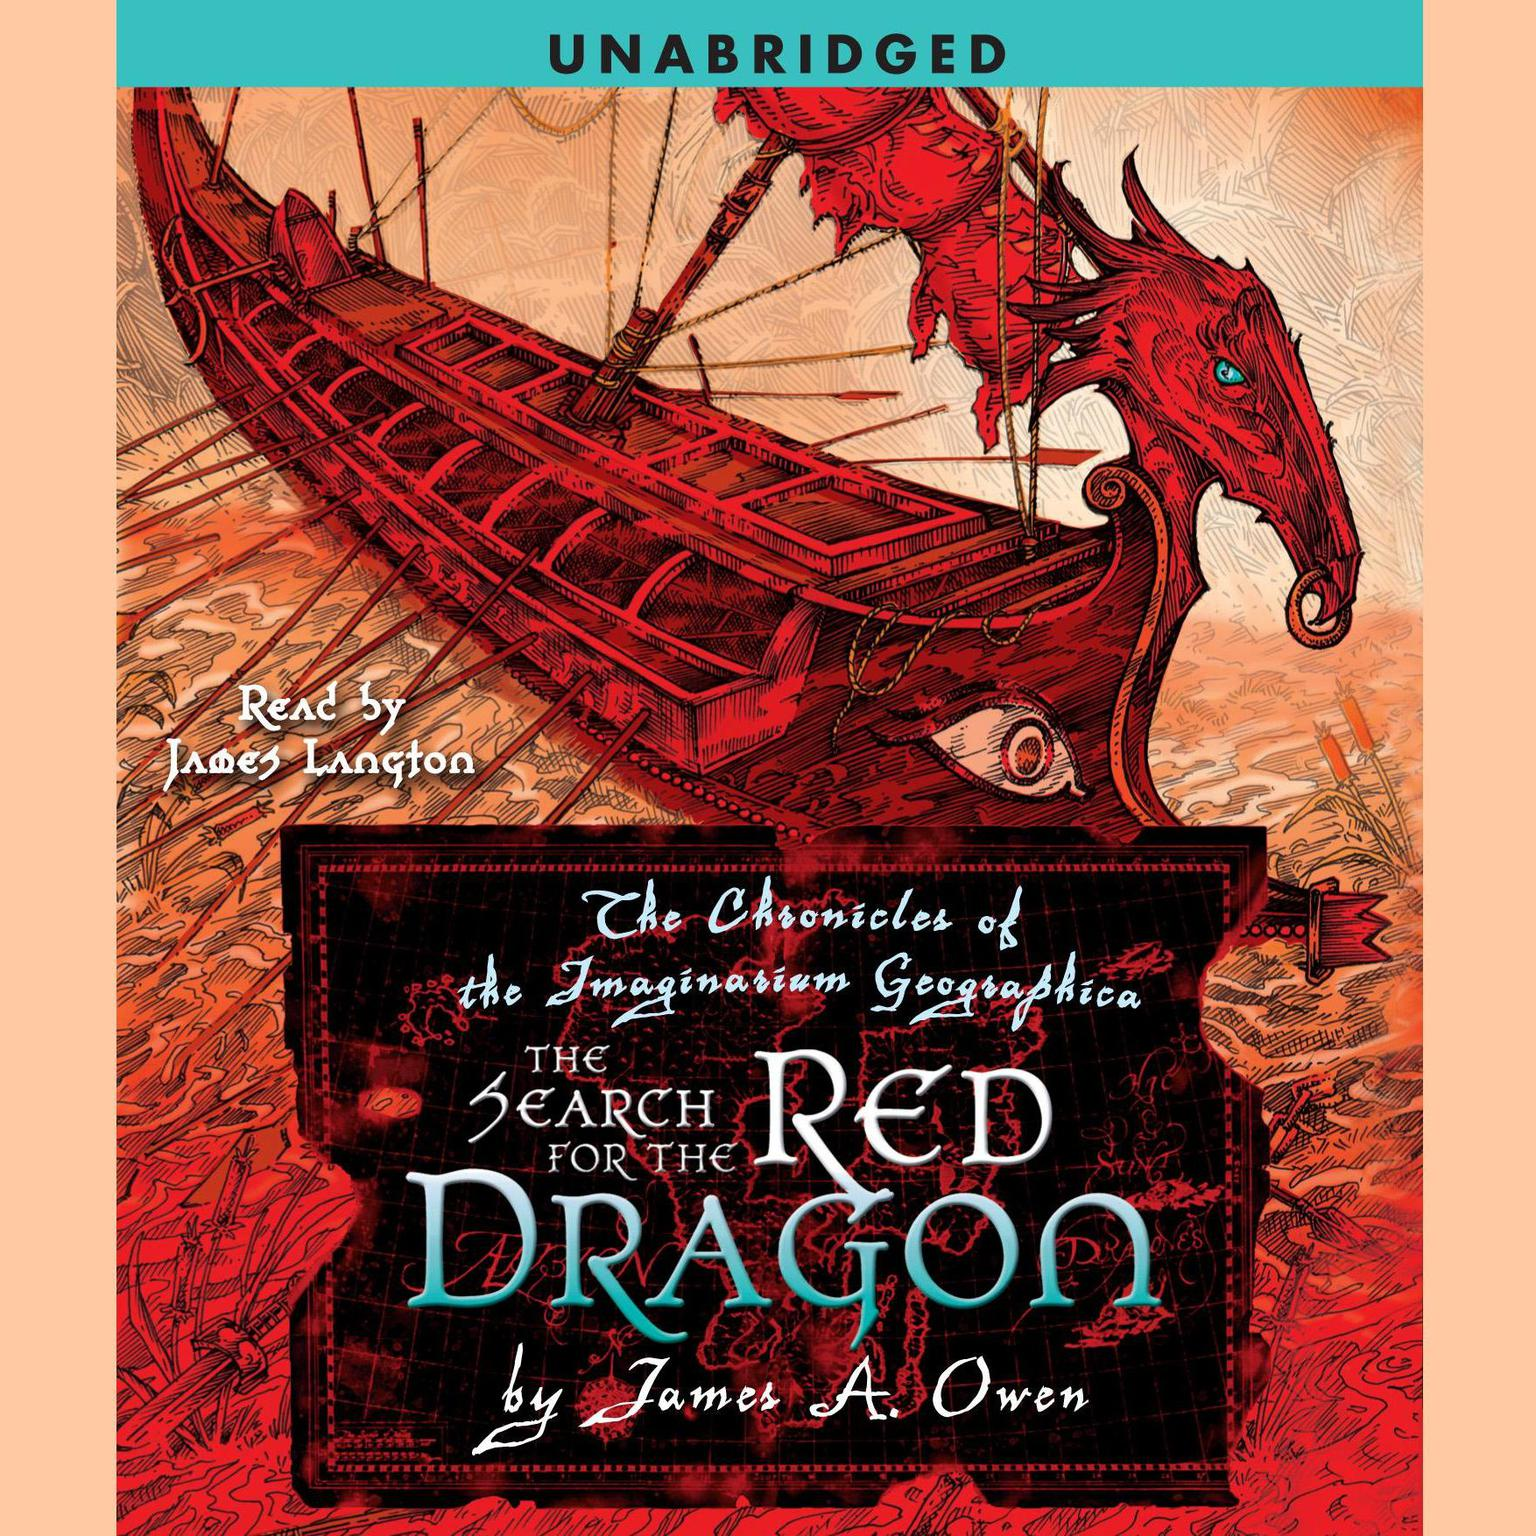 Printable The Search for the Red Dragon: The Chronicles of the Imaginarium Geographica, Book 2 Audiobook Cover Art